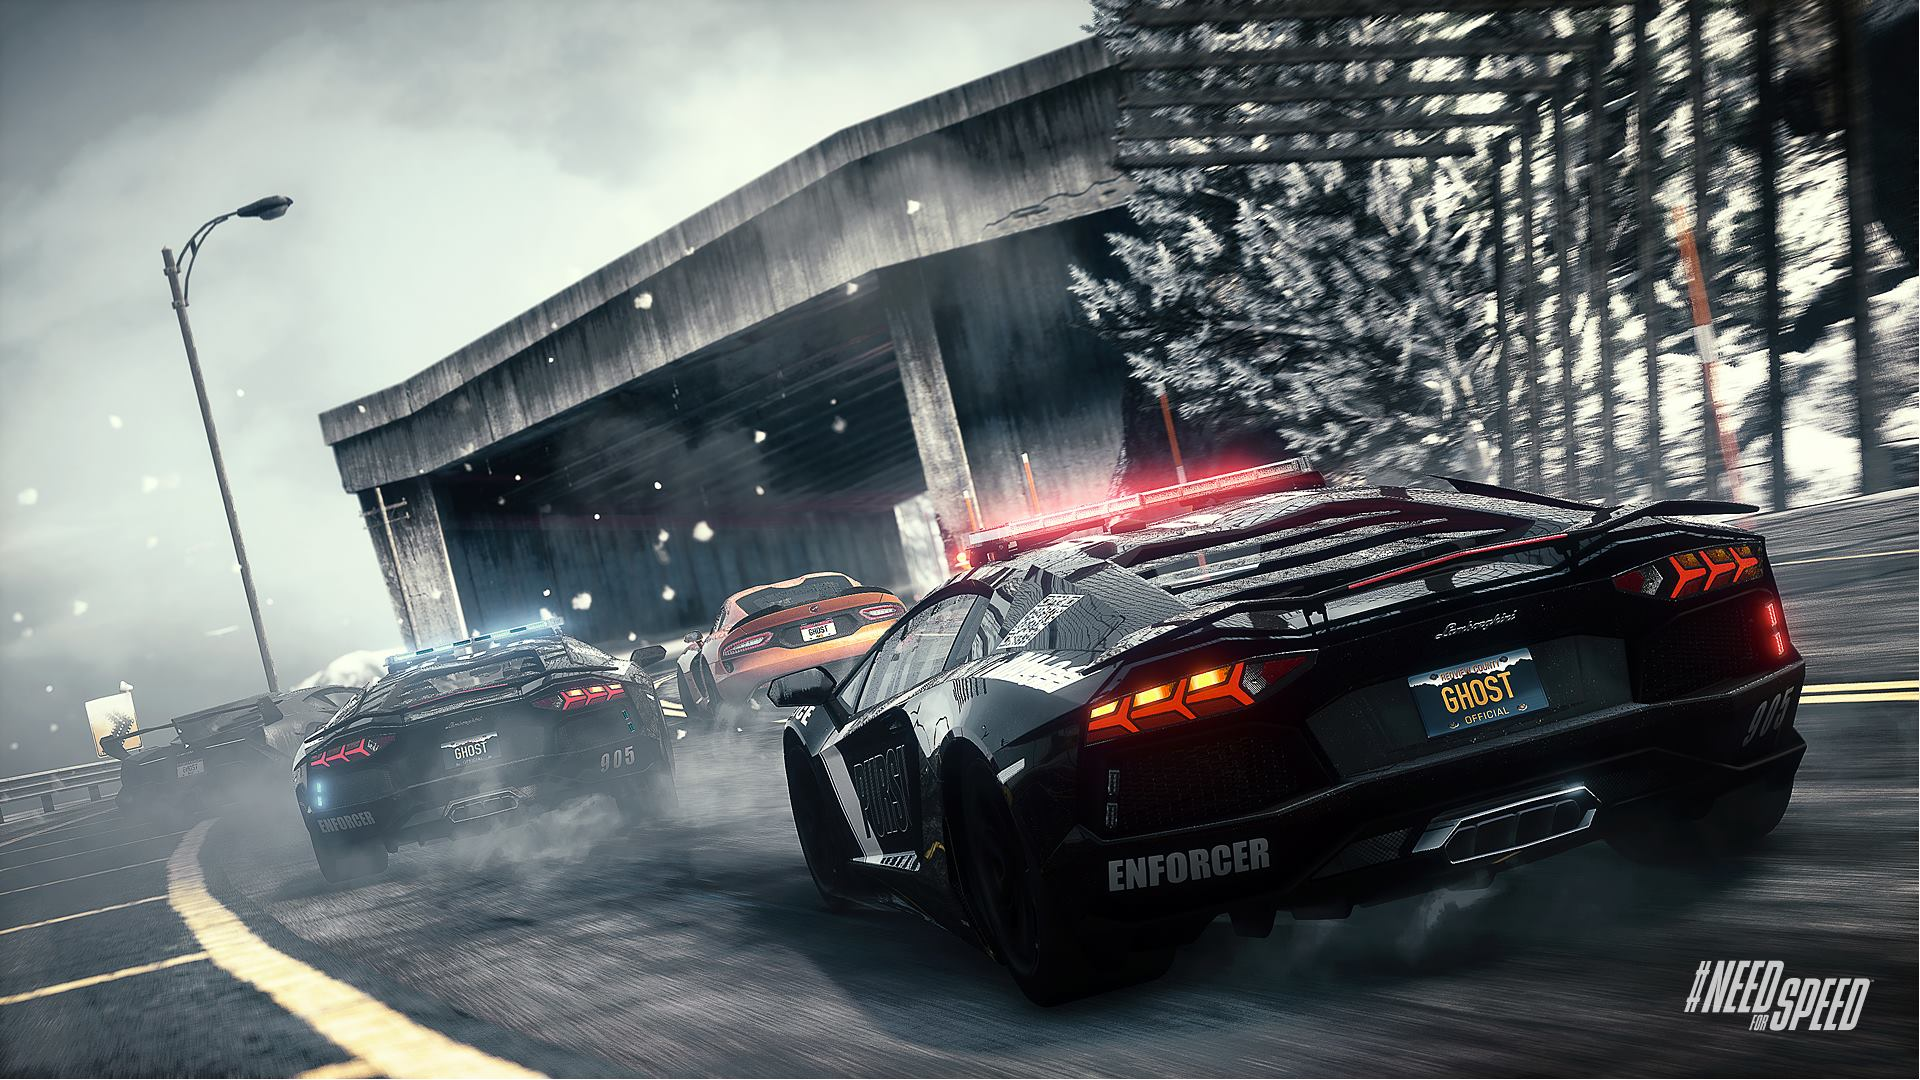 Need for speed rivals hd wallpaper hd latest wallpapers need for speed rivals hd wallpaper voltagebd Choice Image